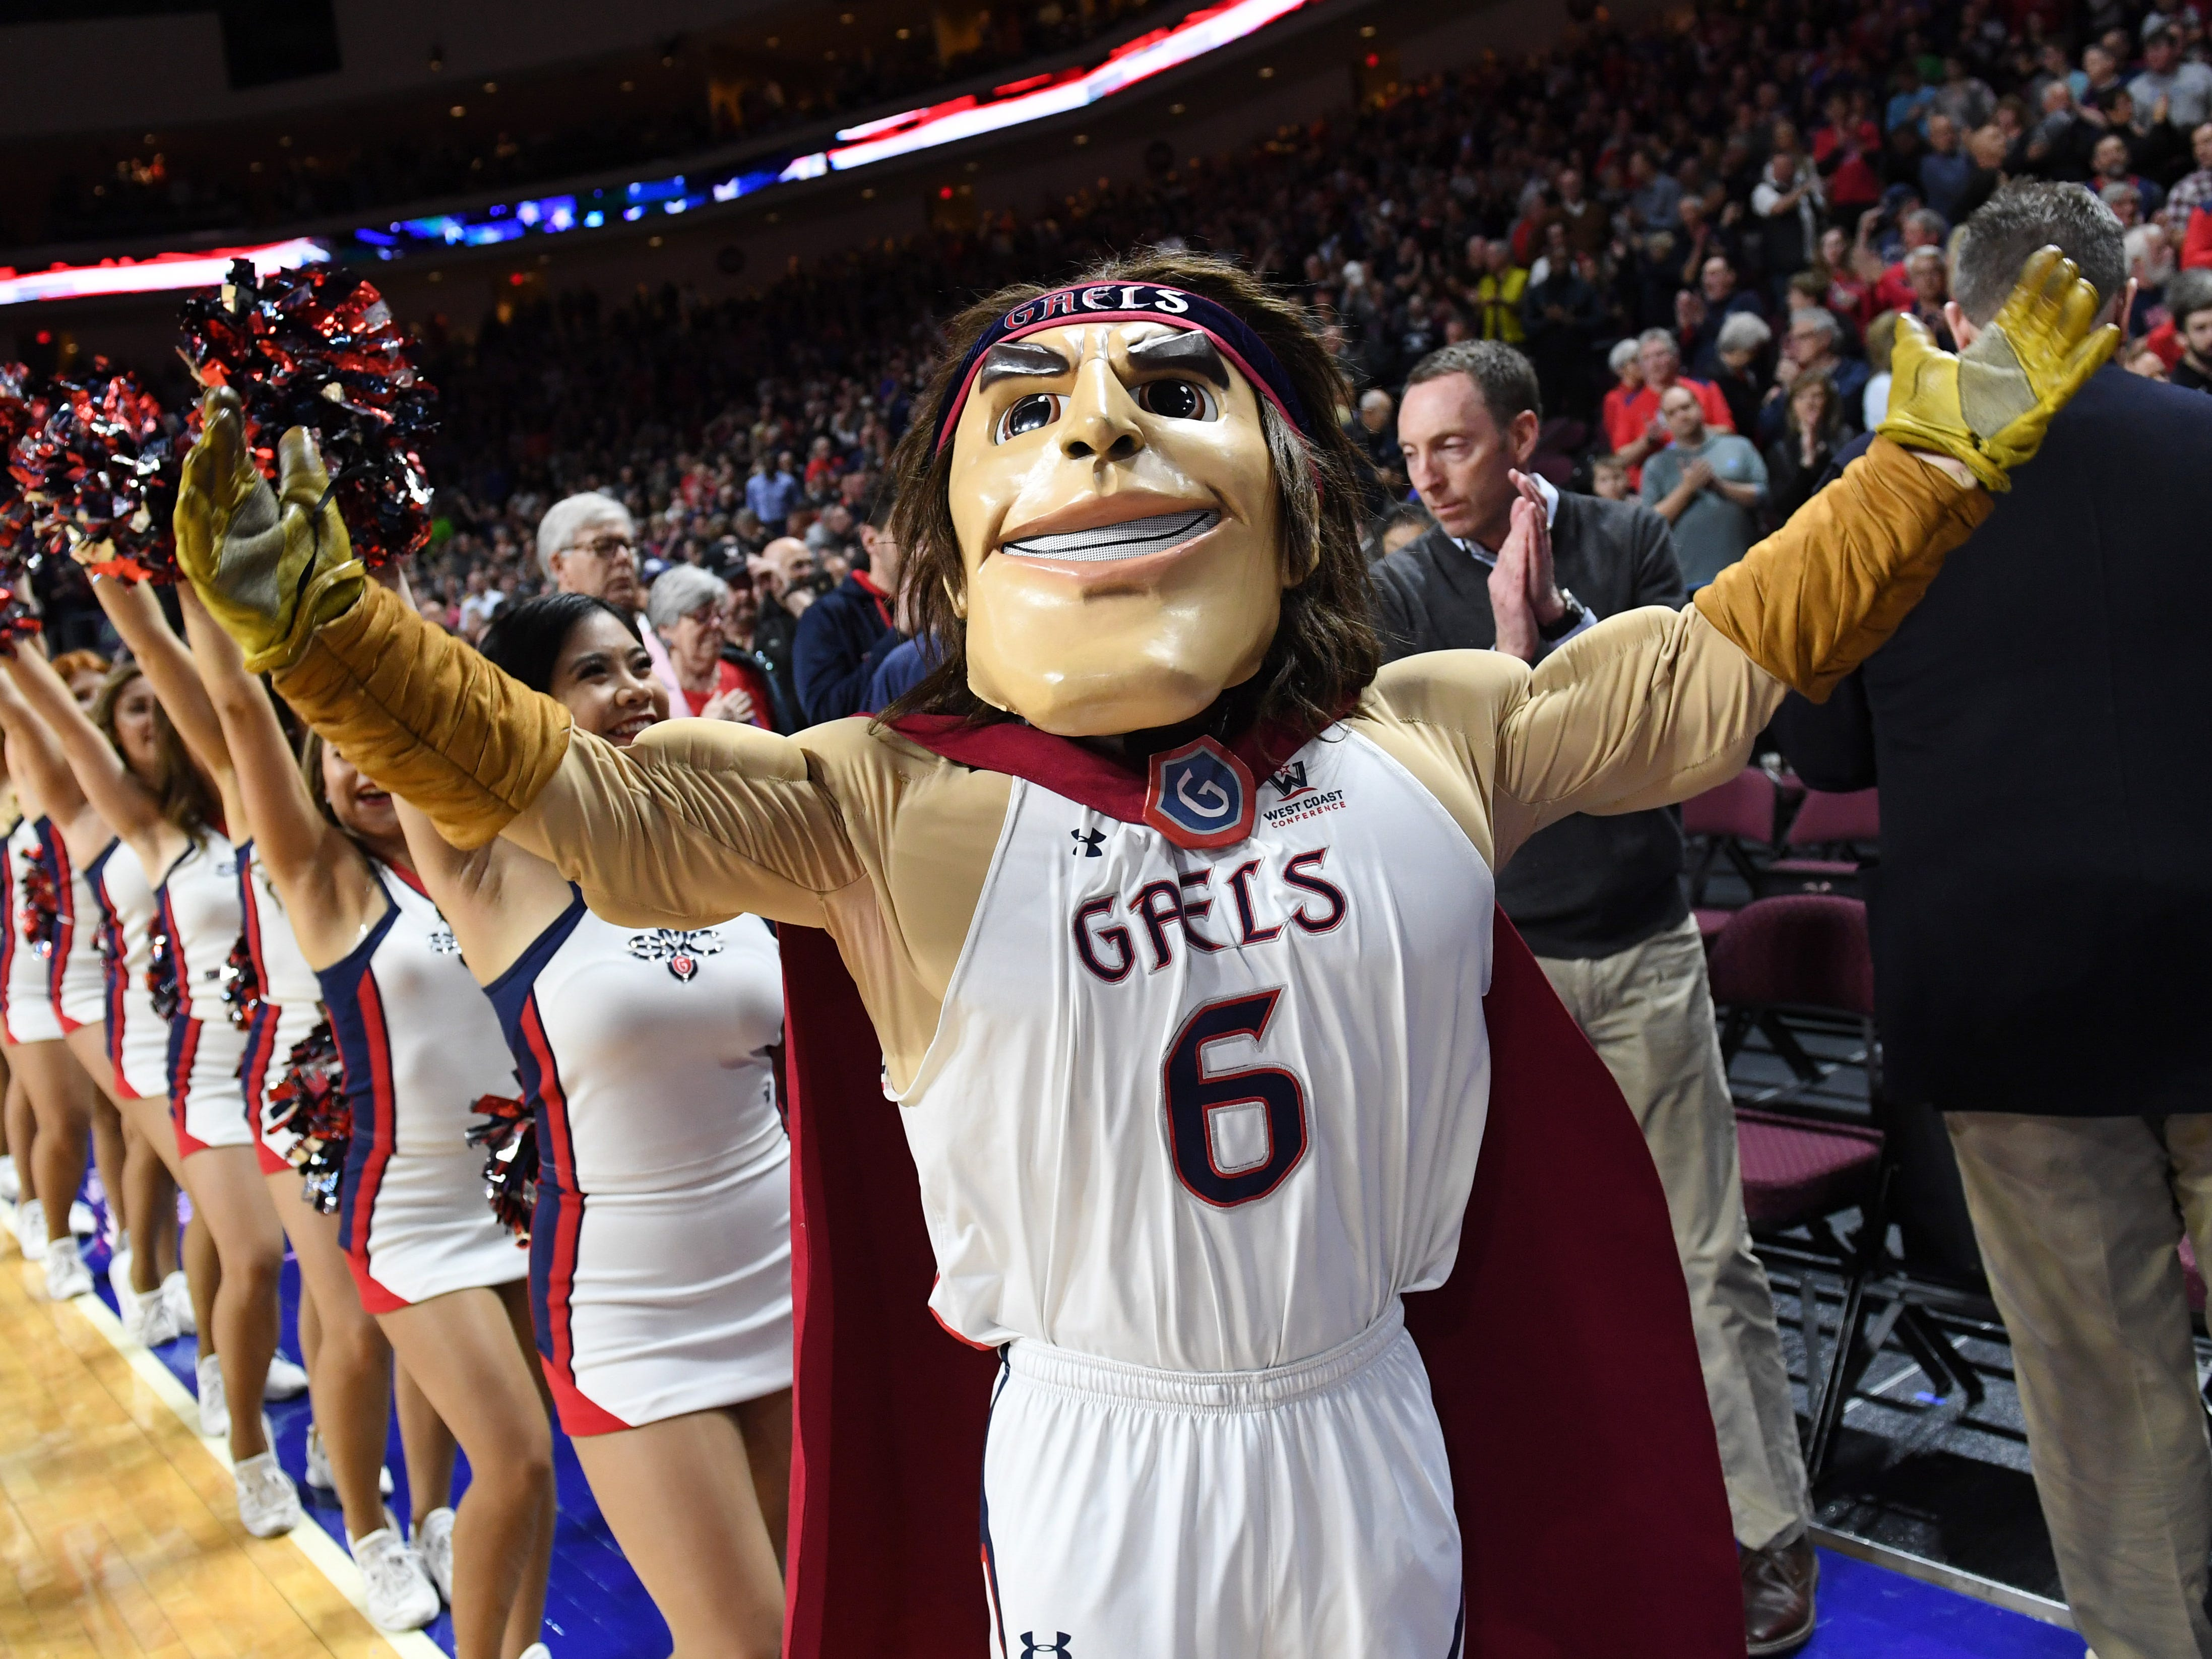 The Saint Mary's Gaels mascot has a face that could give a child nightmares.